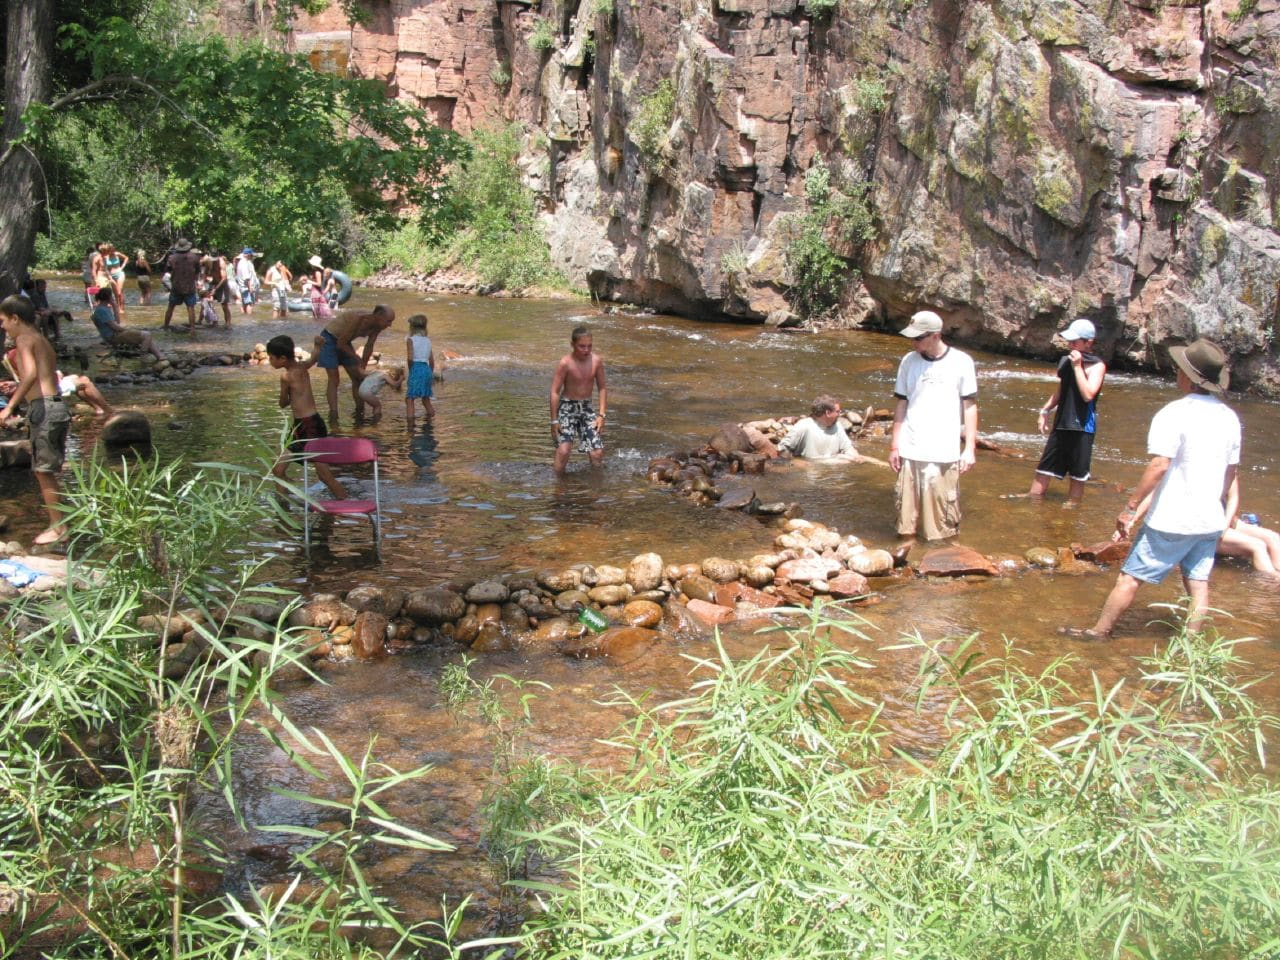 Image of a dam created by festival-goers at Rockygrass Festival in Lyons, CO